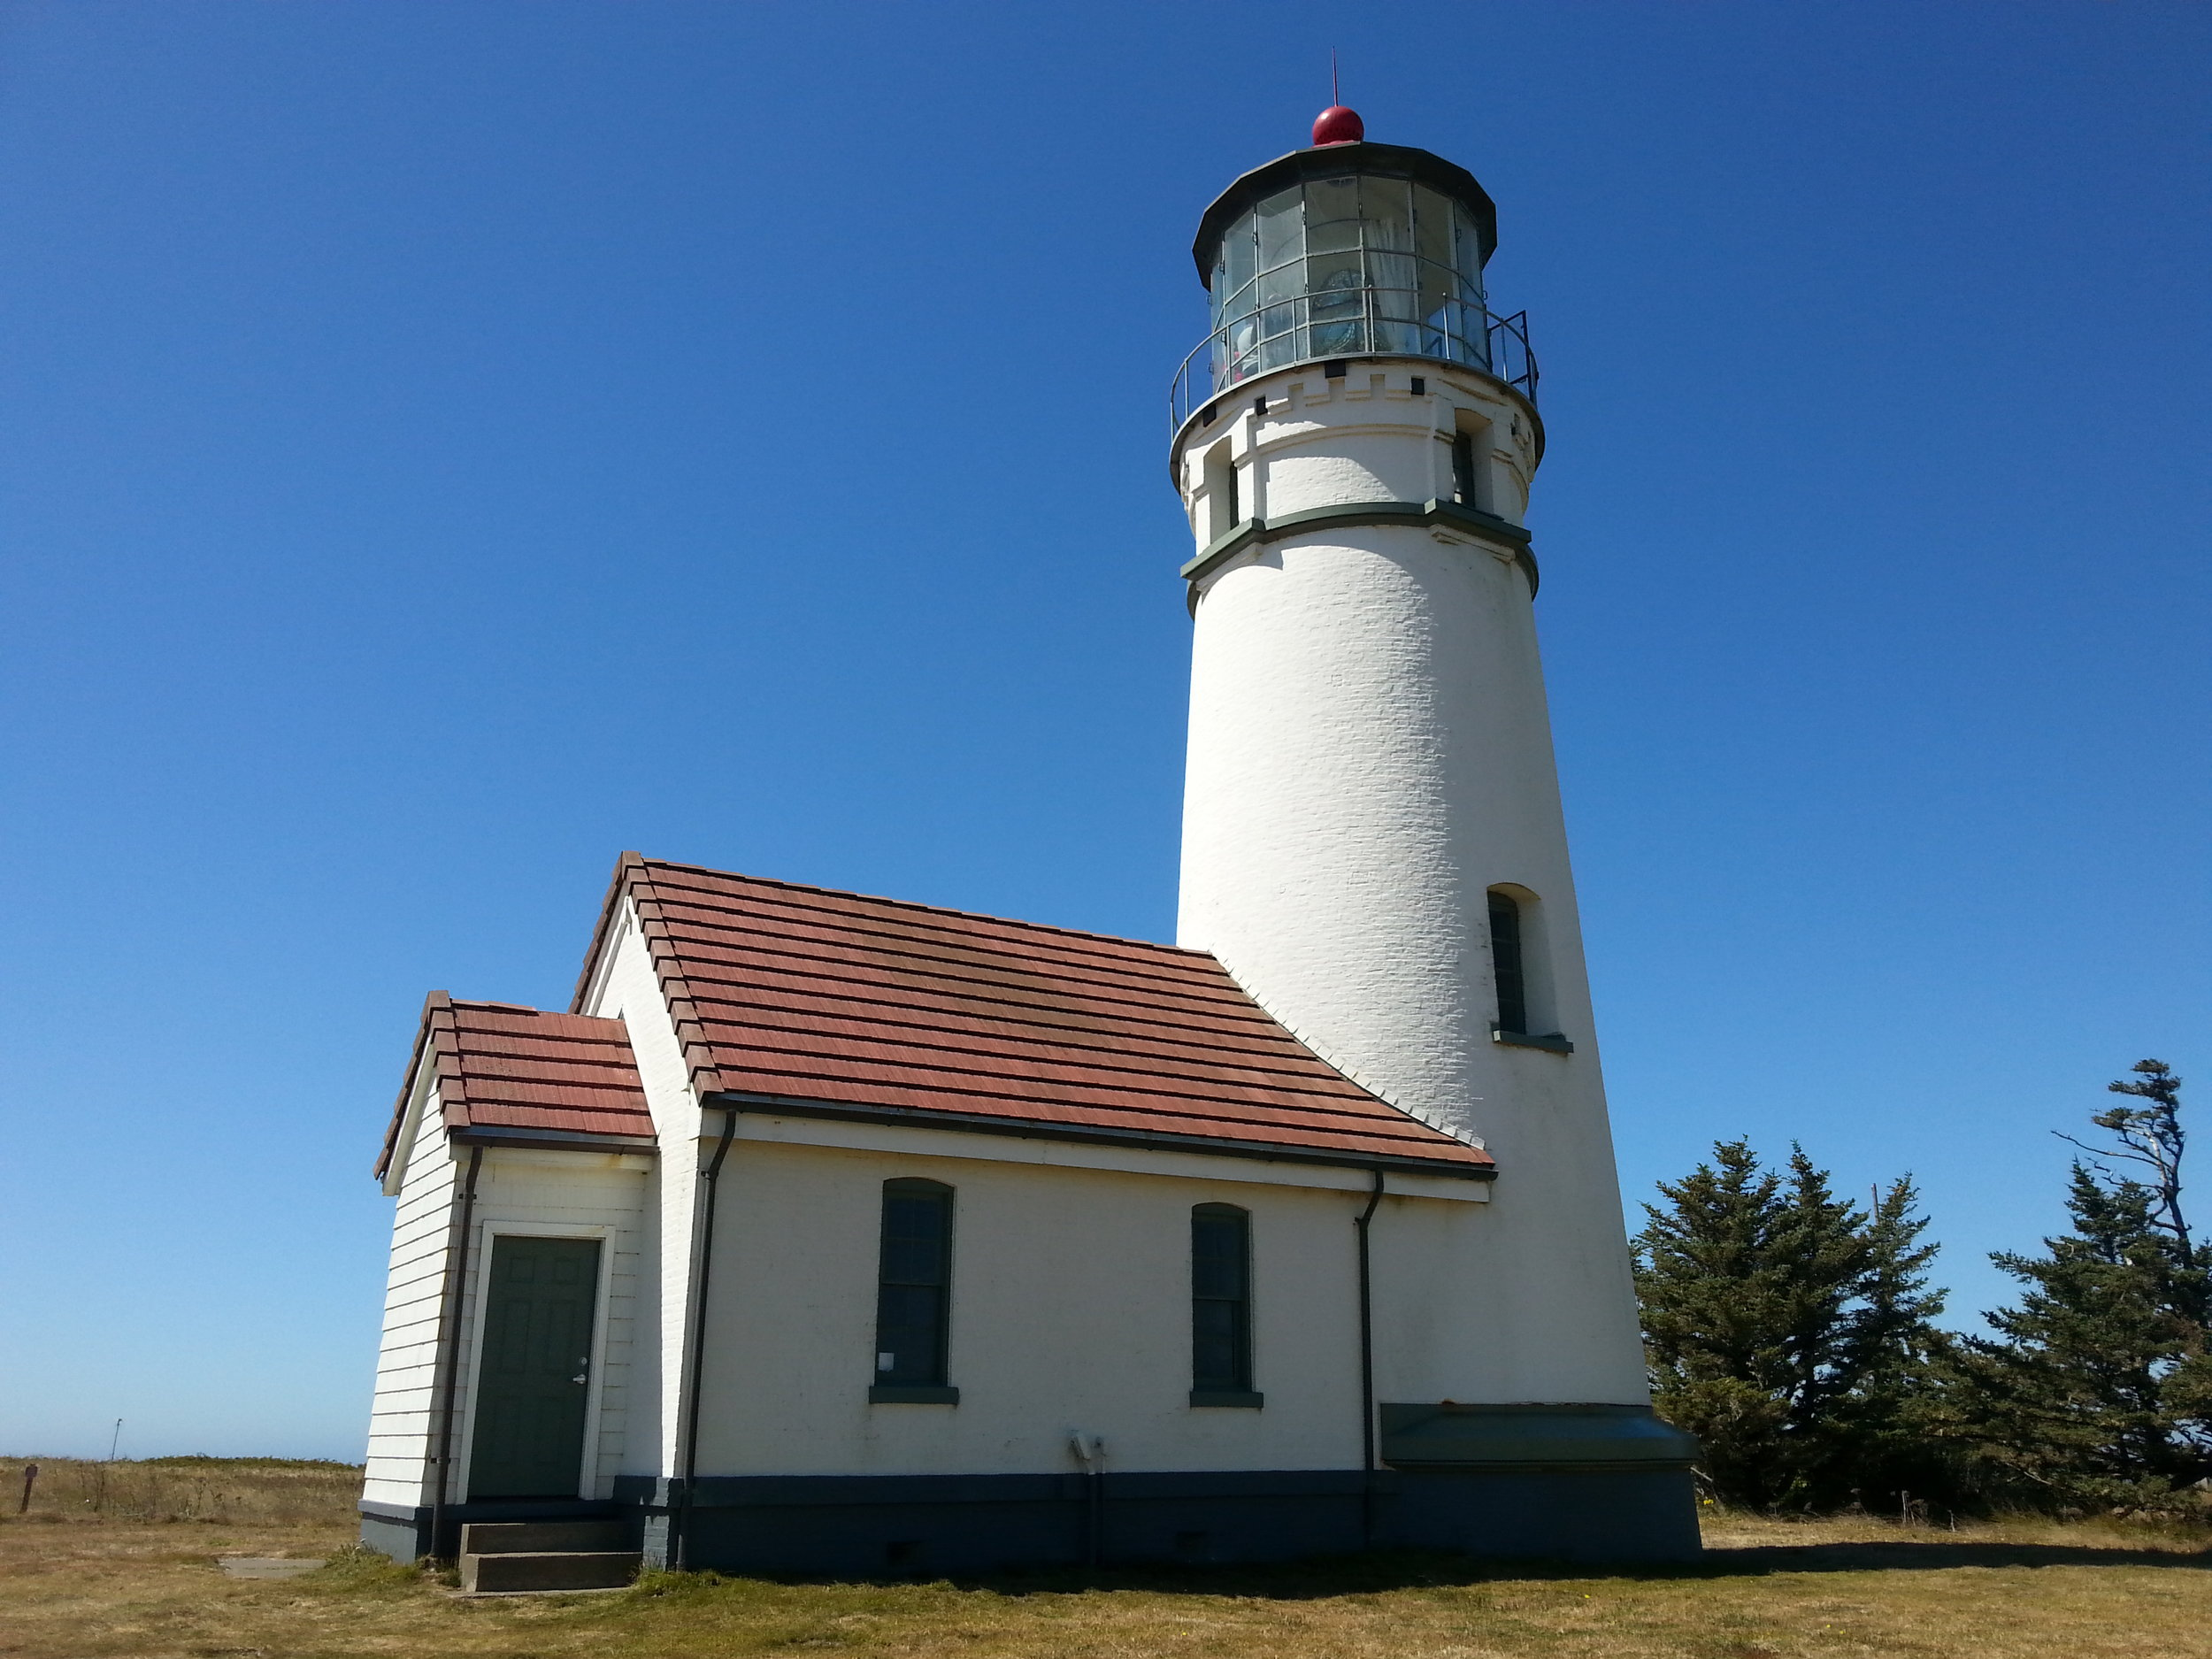 CAPE BLANCO LIGHTHOUSE  - Port Orford, Oregon- What to do in Southern Oregon - Things to do in Bandon